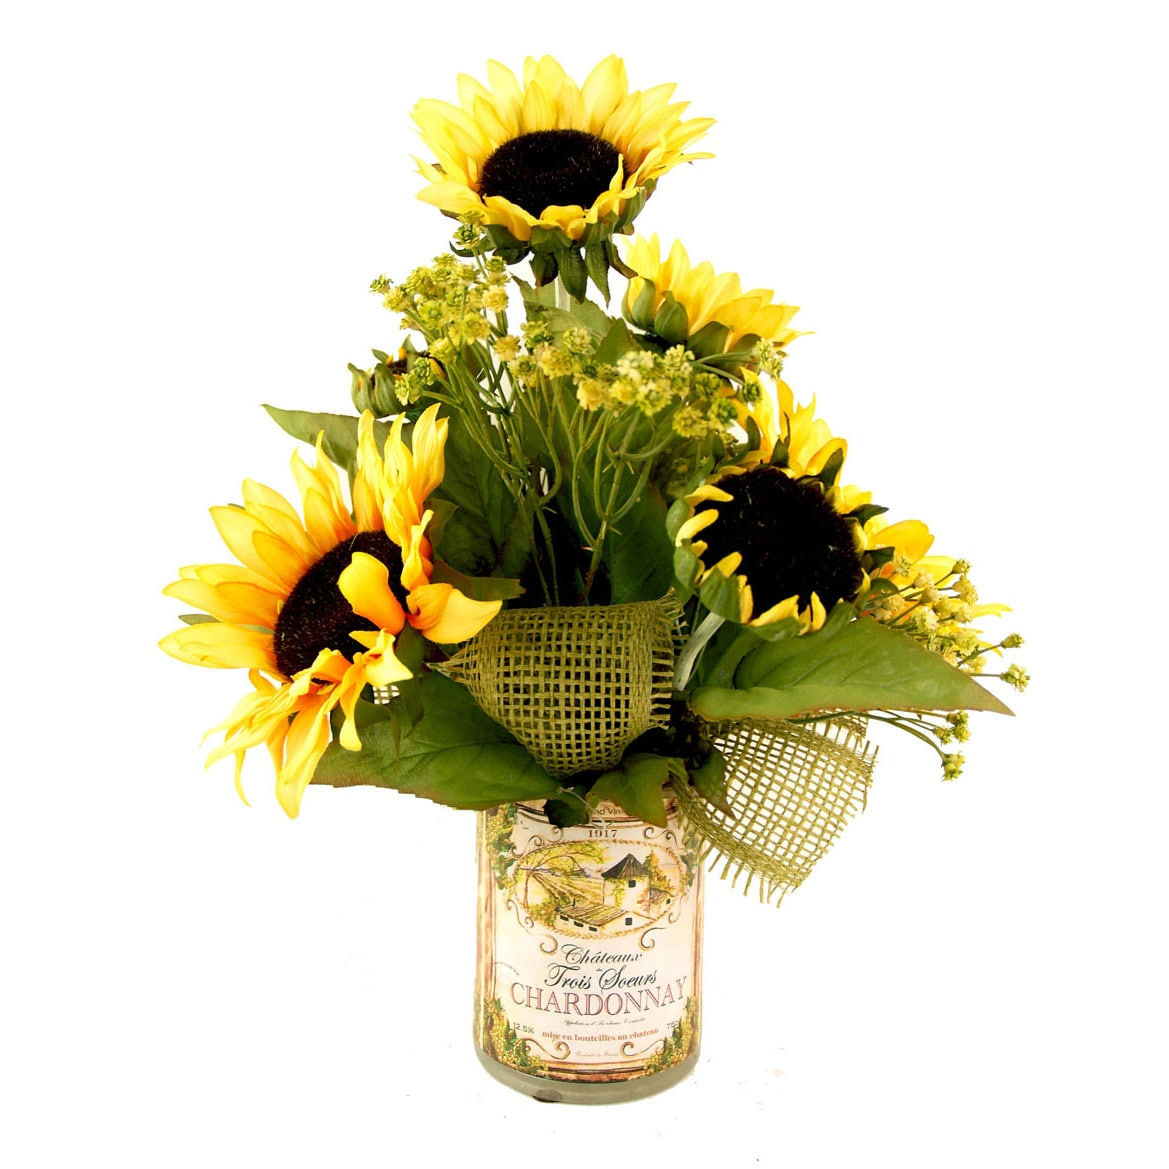 Sunflower Silk Bouquet With Chardonnay Decoupage Glass Free